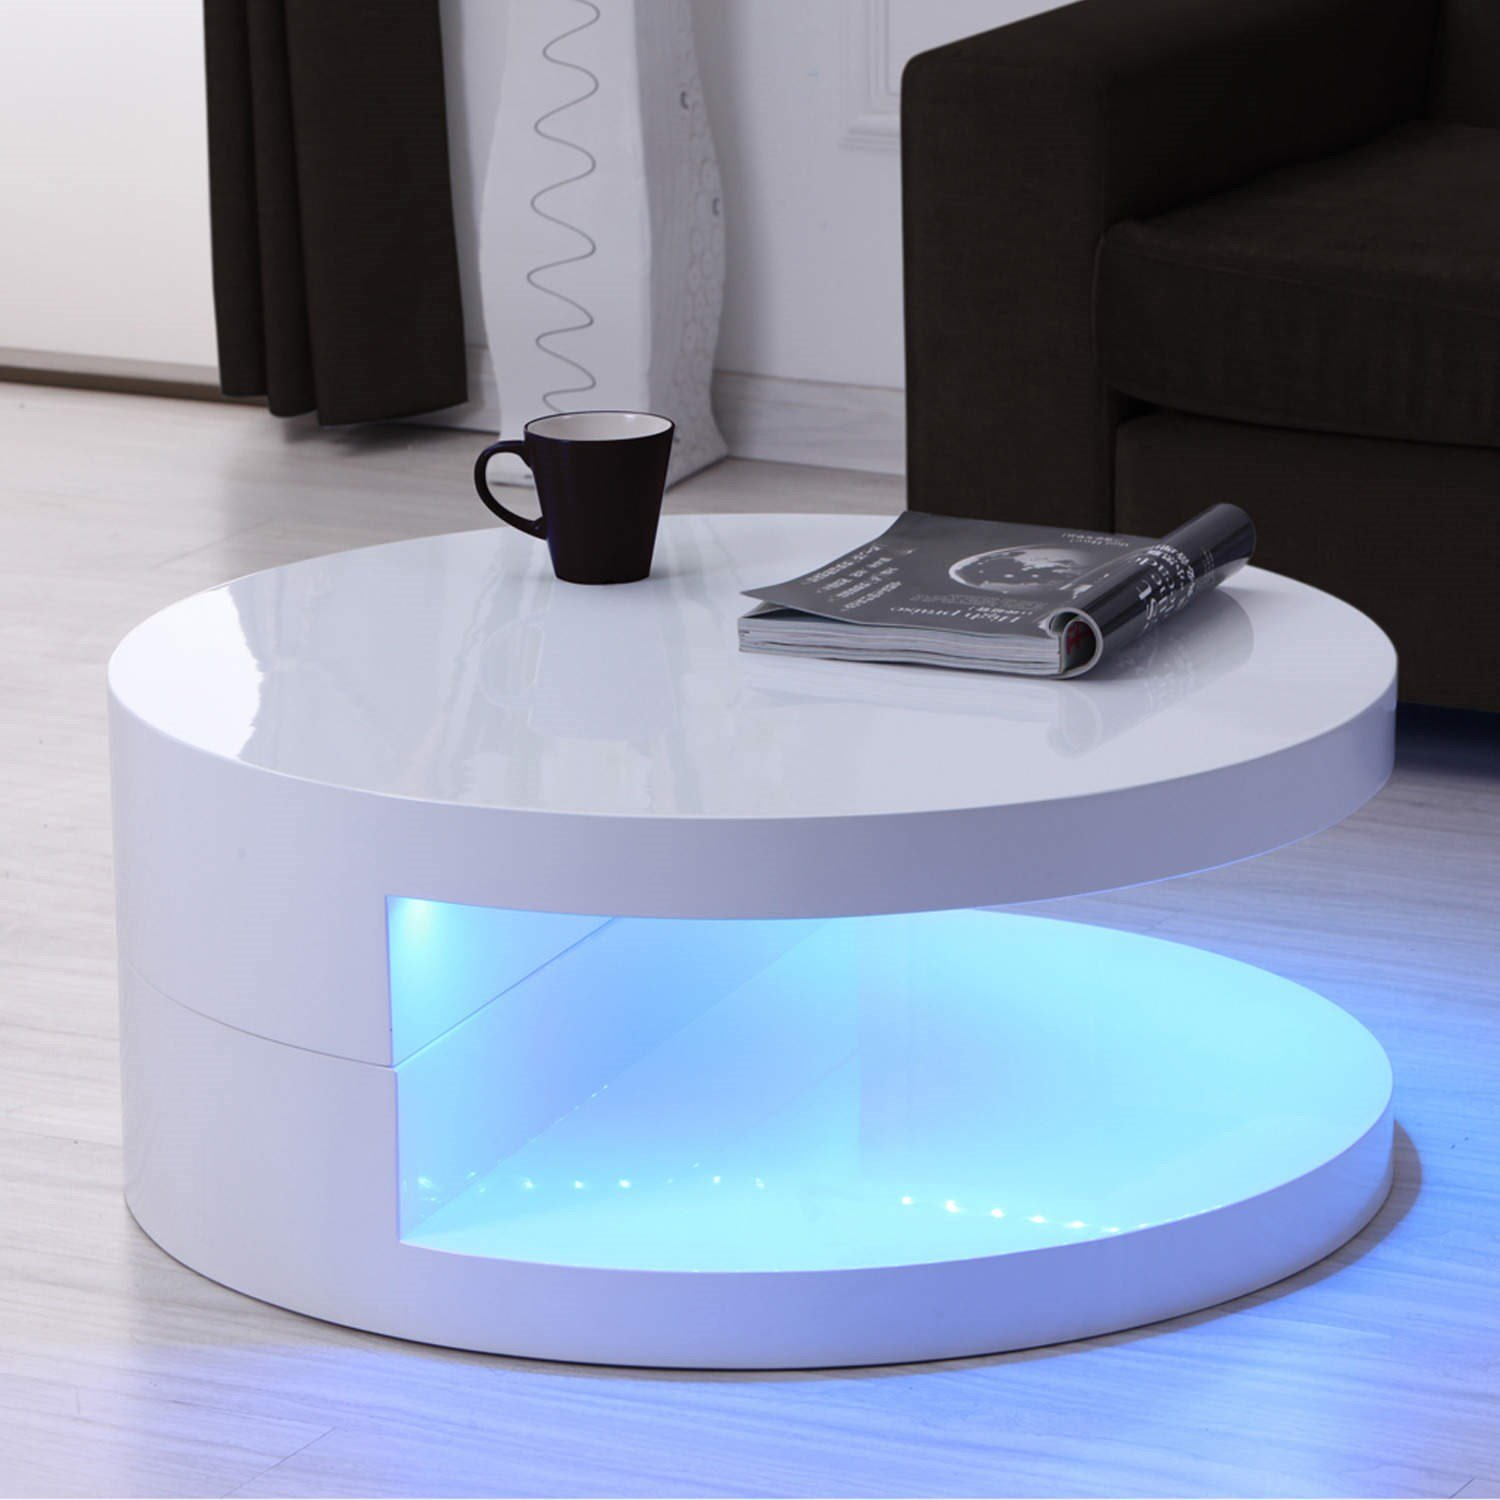 Tiffany LED Round Top White High Gloss Coffee Table 80x80cm